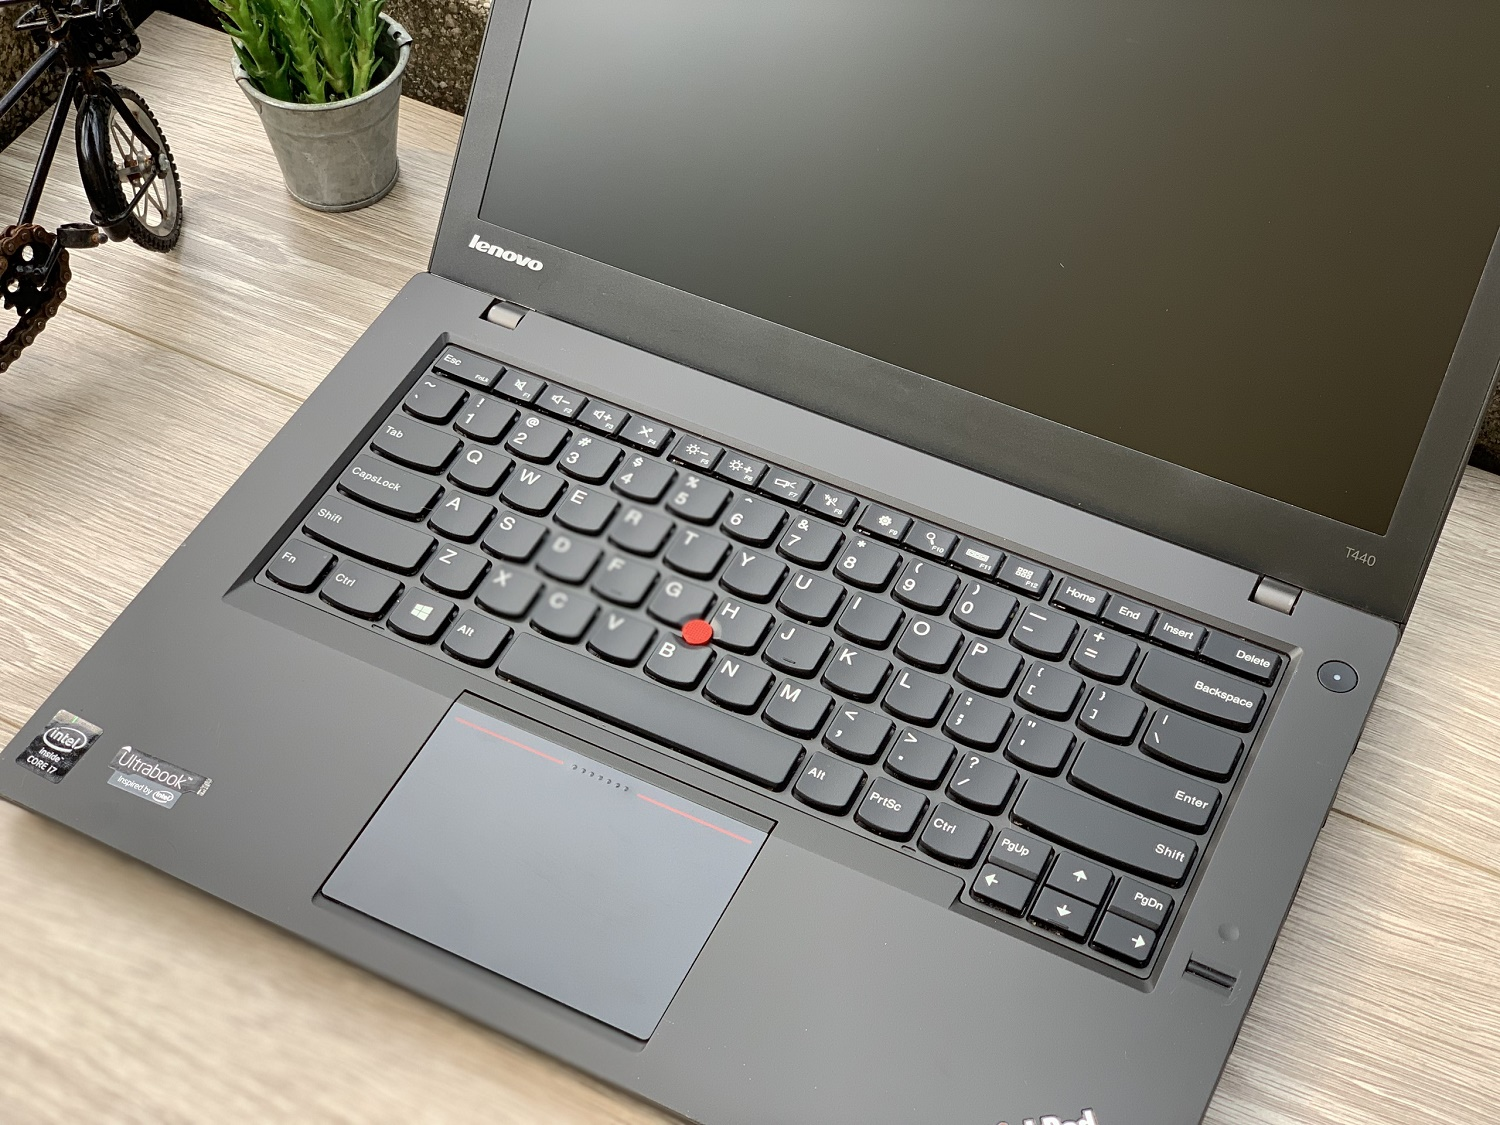 Lenovo Thinkpad T440 : Core i7-4600U | 8Gb | SSD240Gb | 14.0 FHD IPS